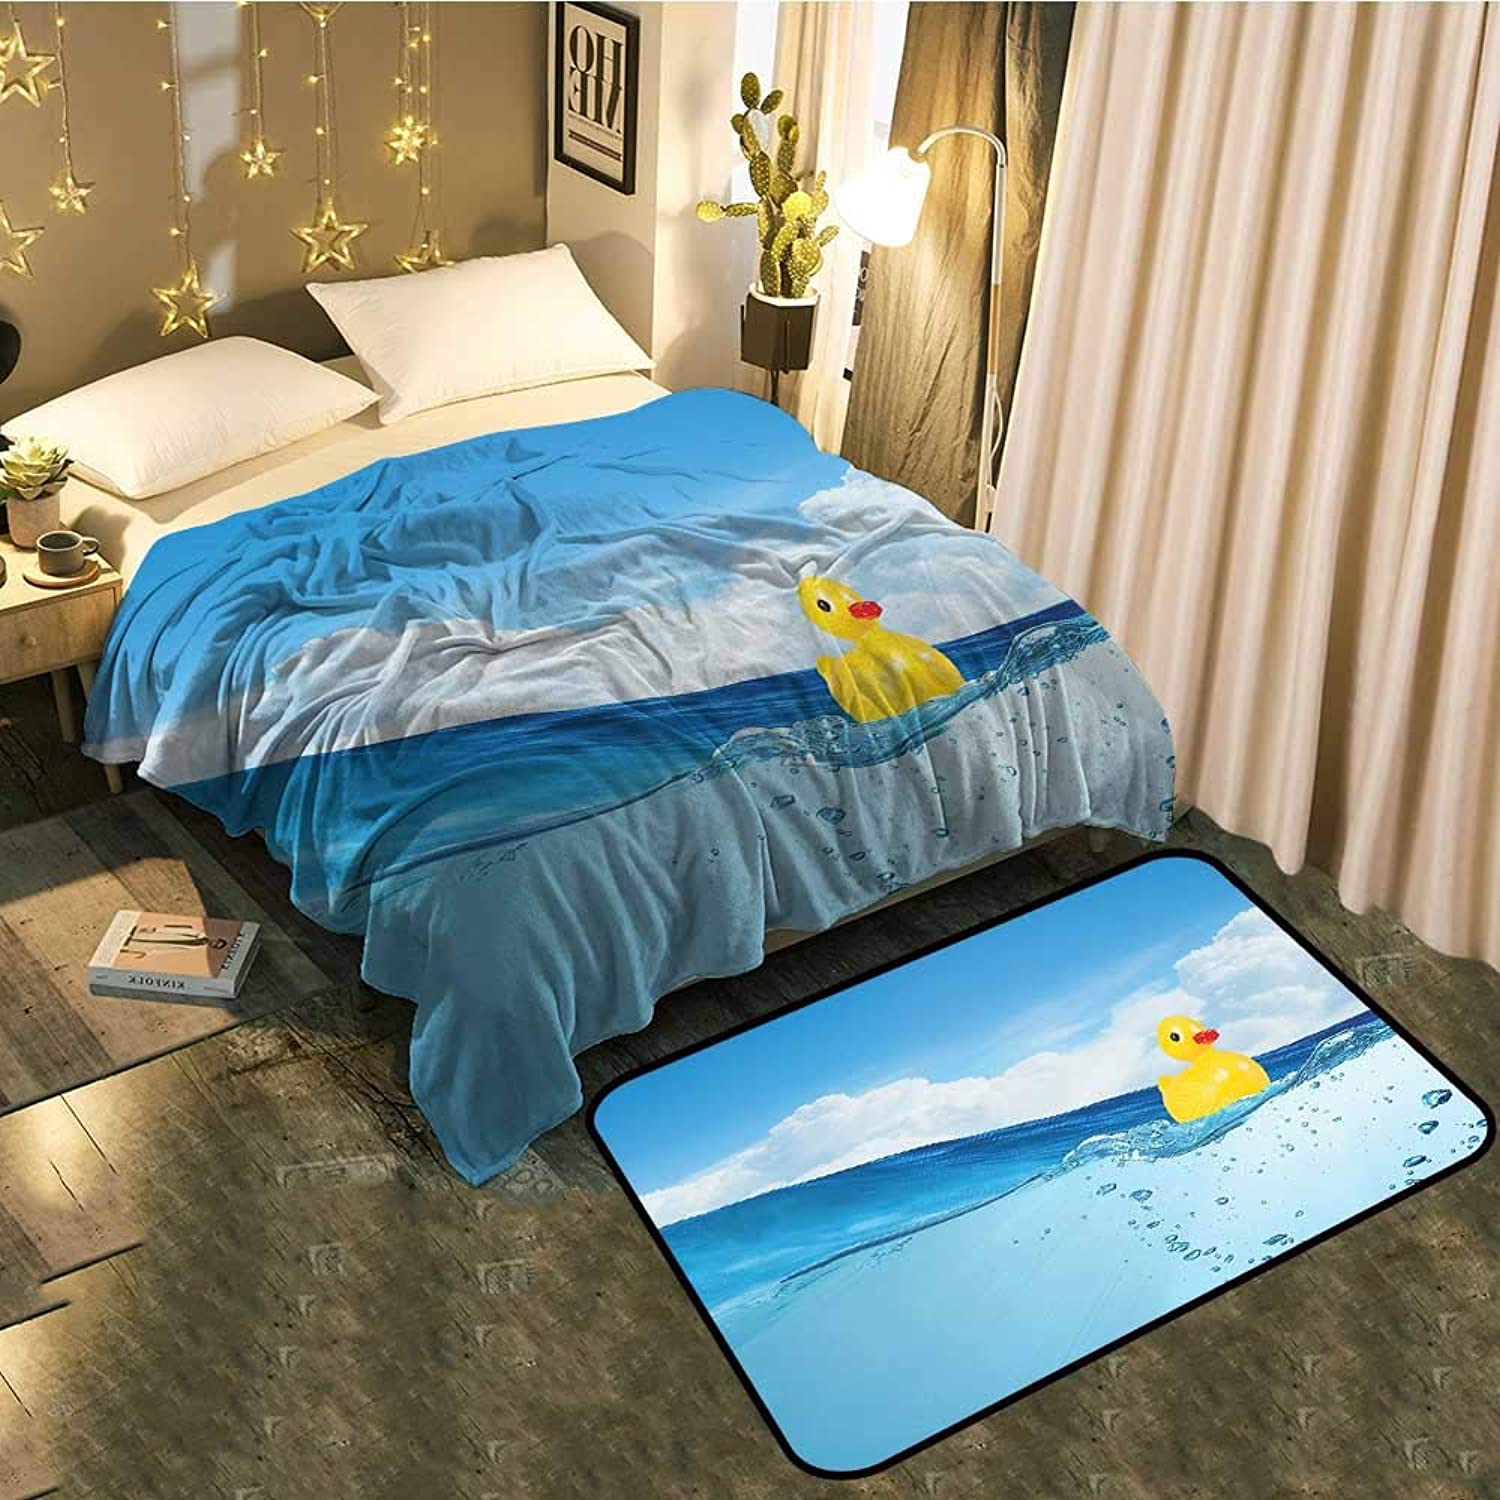 Bedside Blanket Doormat suitLittle Duckling Toy Swimming in Pond Pool Sea Sunny Day Floating on Water Cozy and Durable Blanket 35 x60  Mat 22 x60